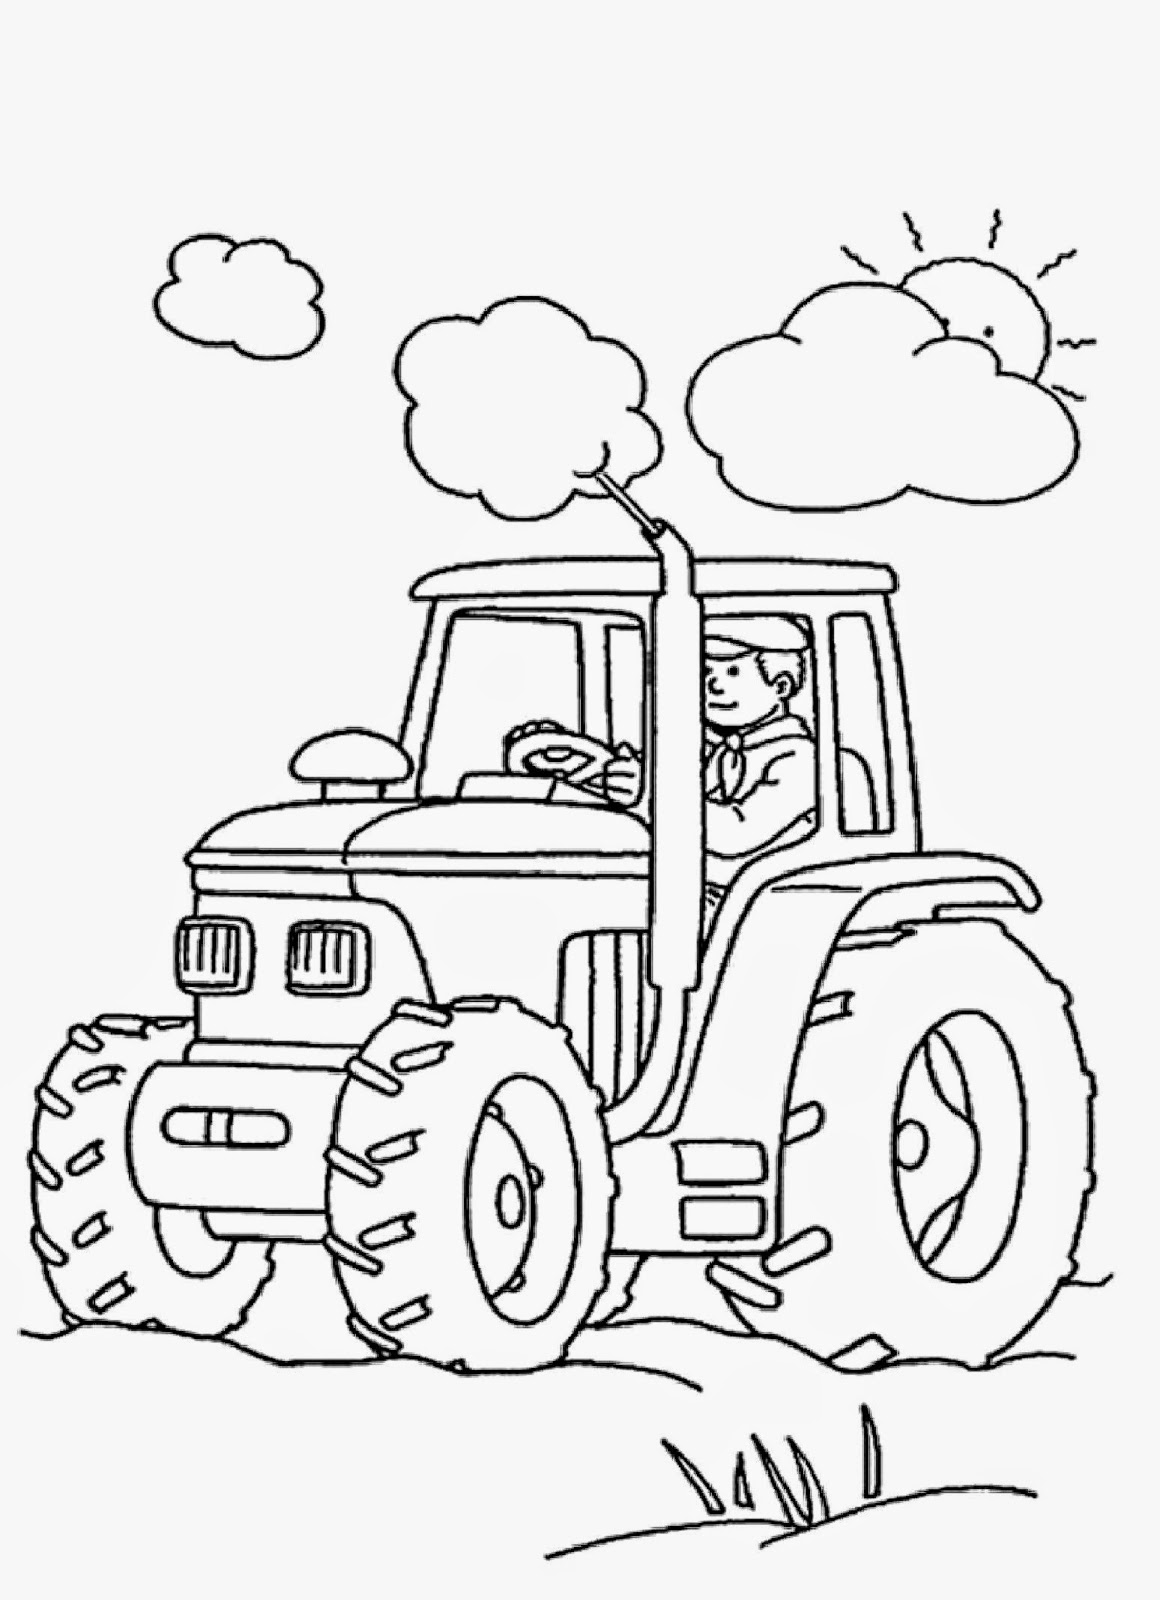 Coloring in pictures for toddlers - Printable Coloring Pages Boy Free Coloring Pages Childrens Church Coloring Sheets For Boys Coloring Pages